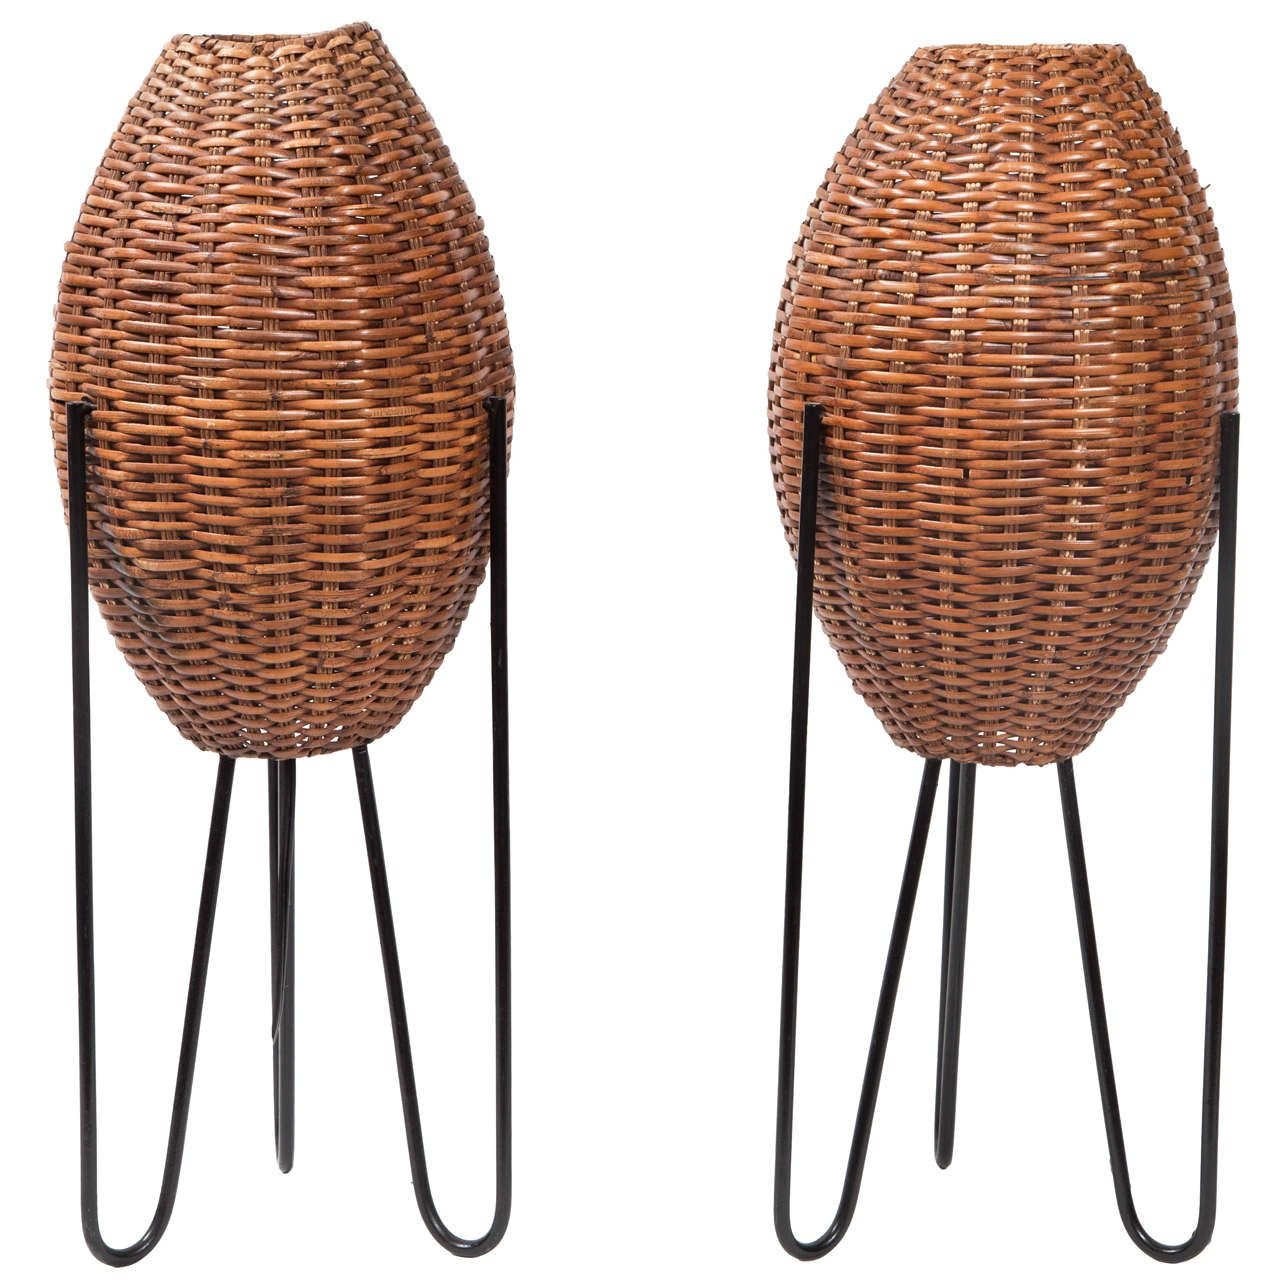 Paul mayen woven tripod hairpin floor lamps tripod floor lamp paul mayen woven tripod hairpin floor lamps mozeypictures Image collections